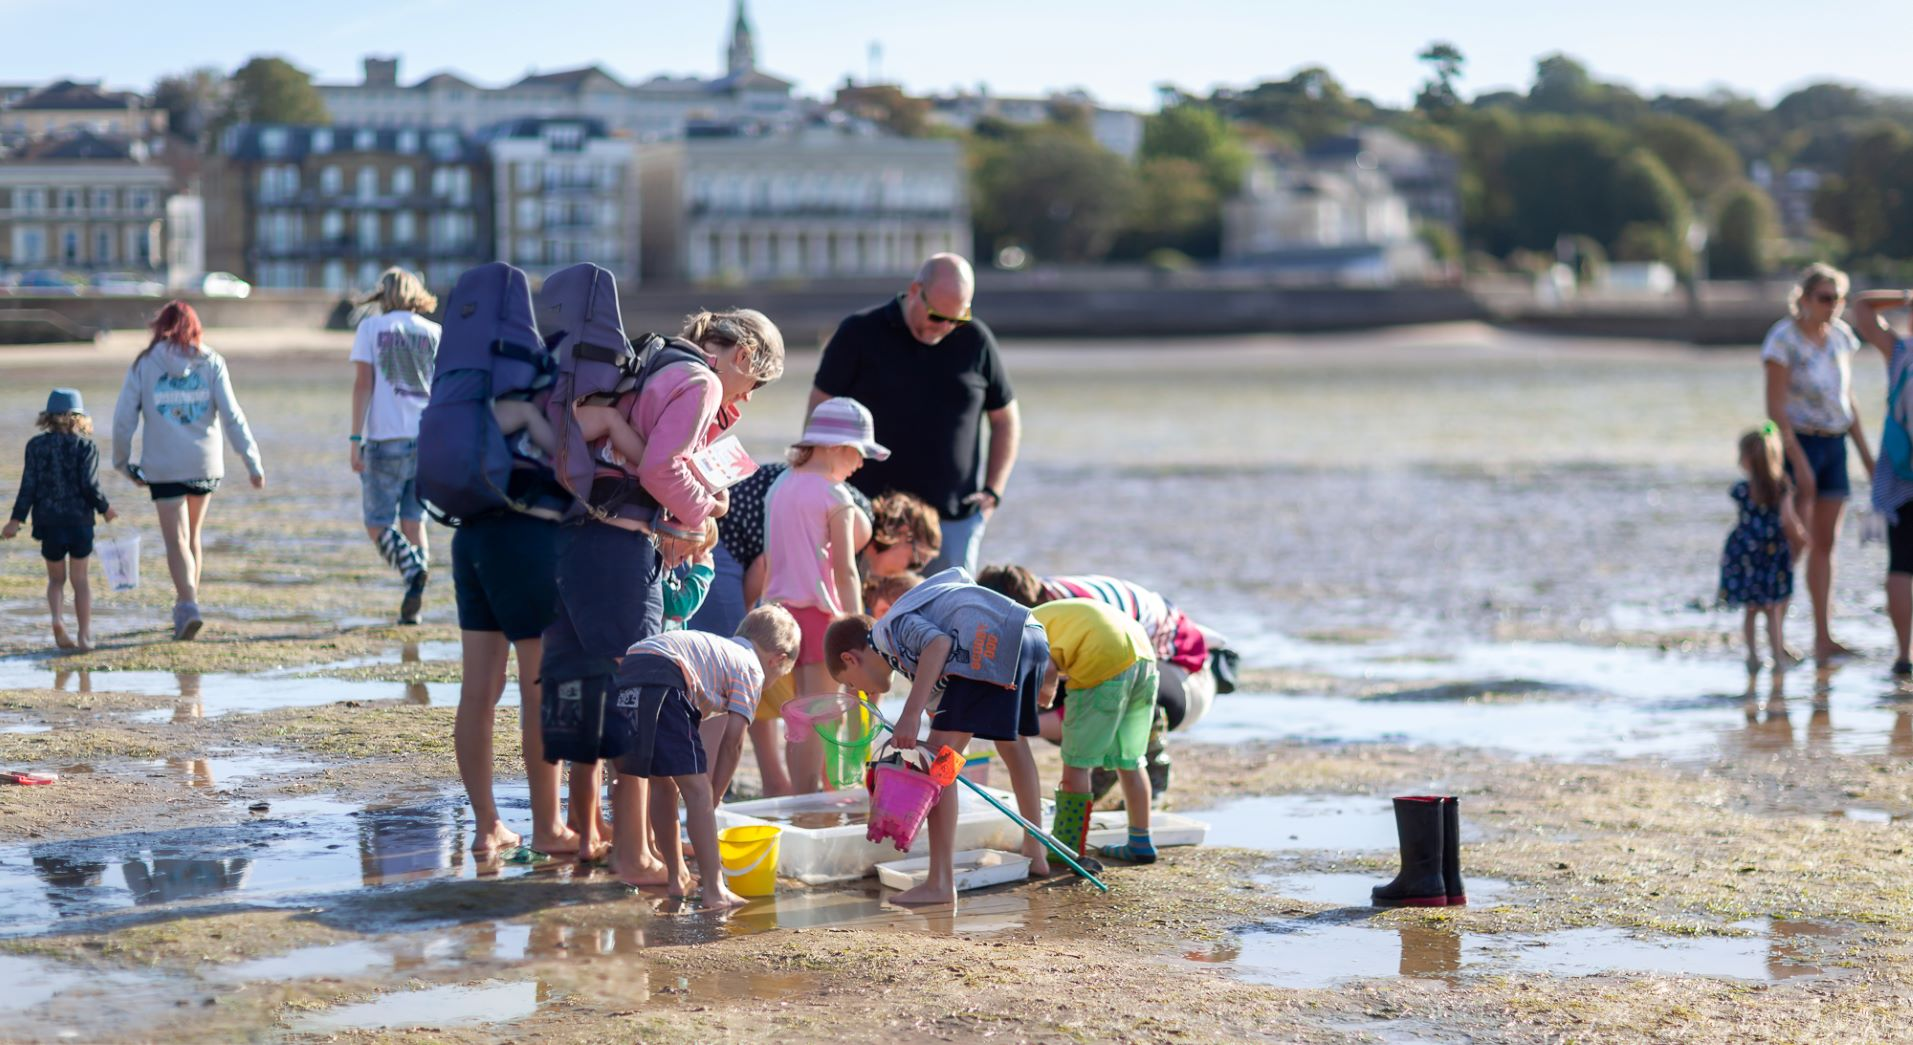 Sandpooling with Ryde's historic streetscape as your backdrop picture by Julian Winslow